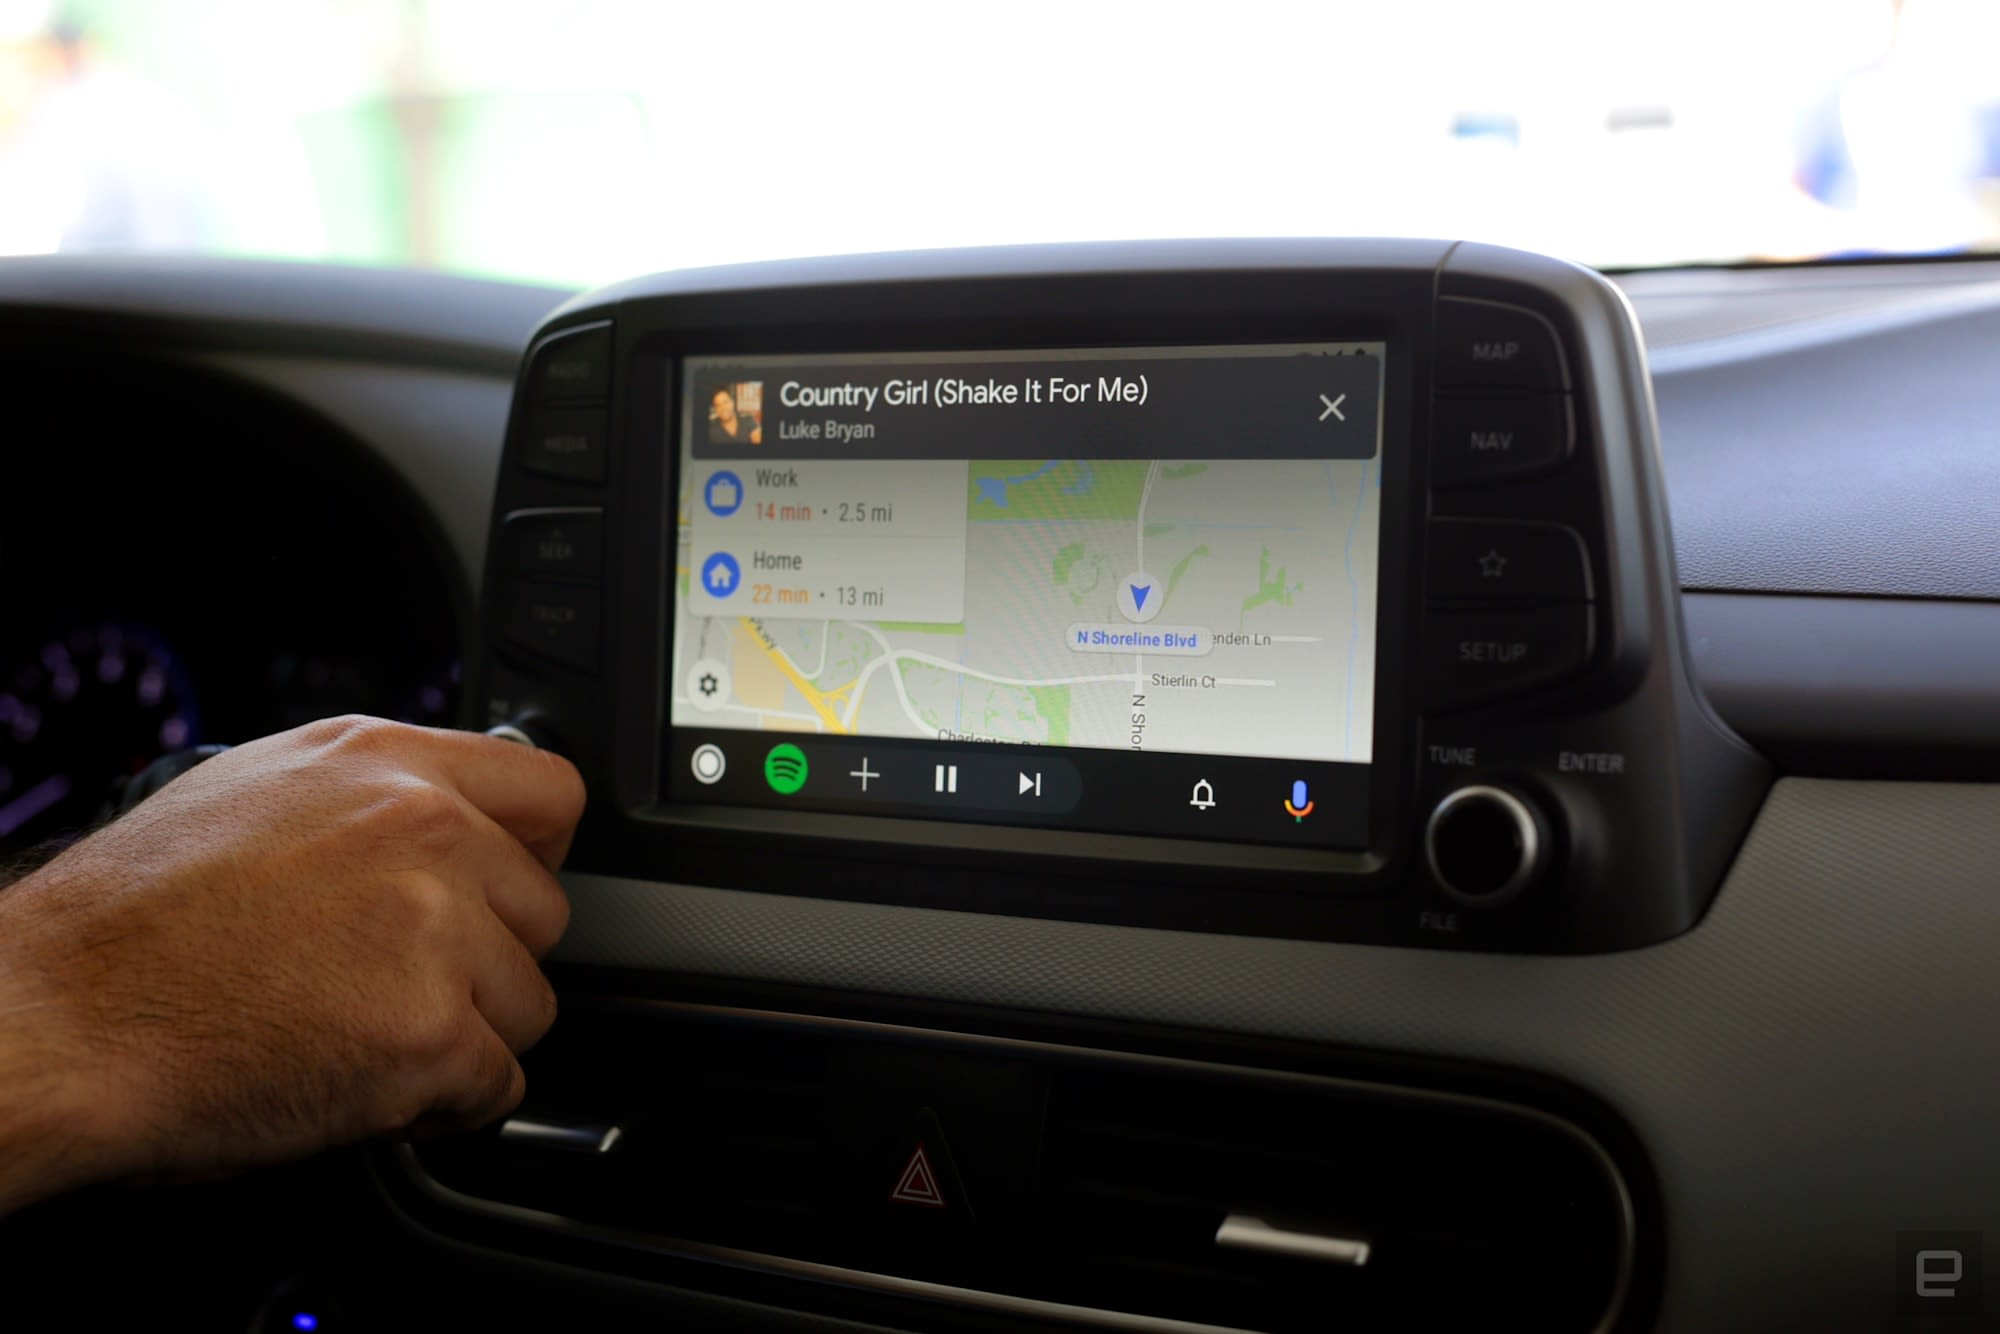 Google improved Android Auto by making it act more like your phone